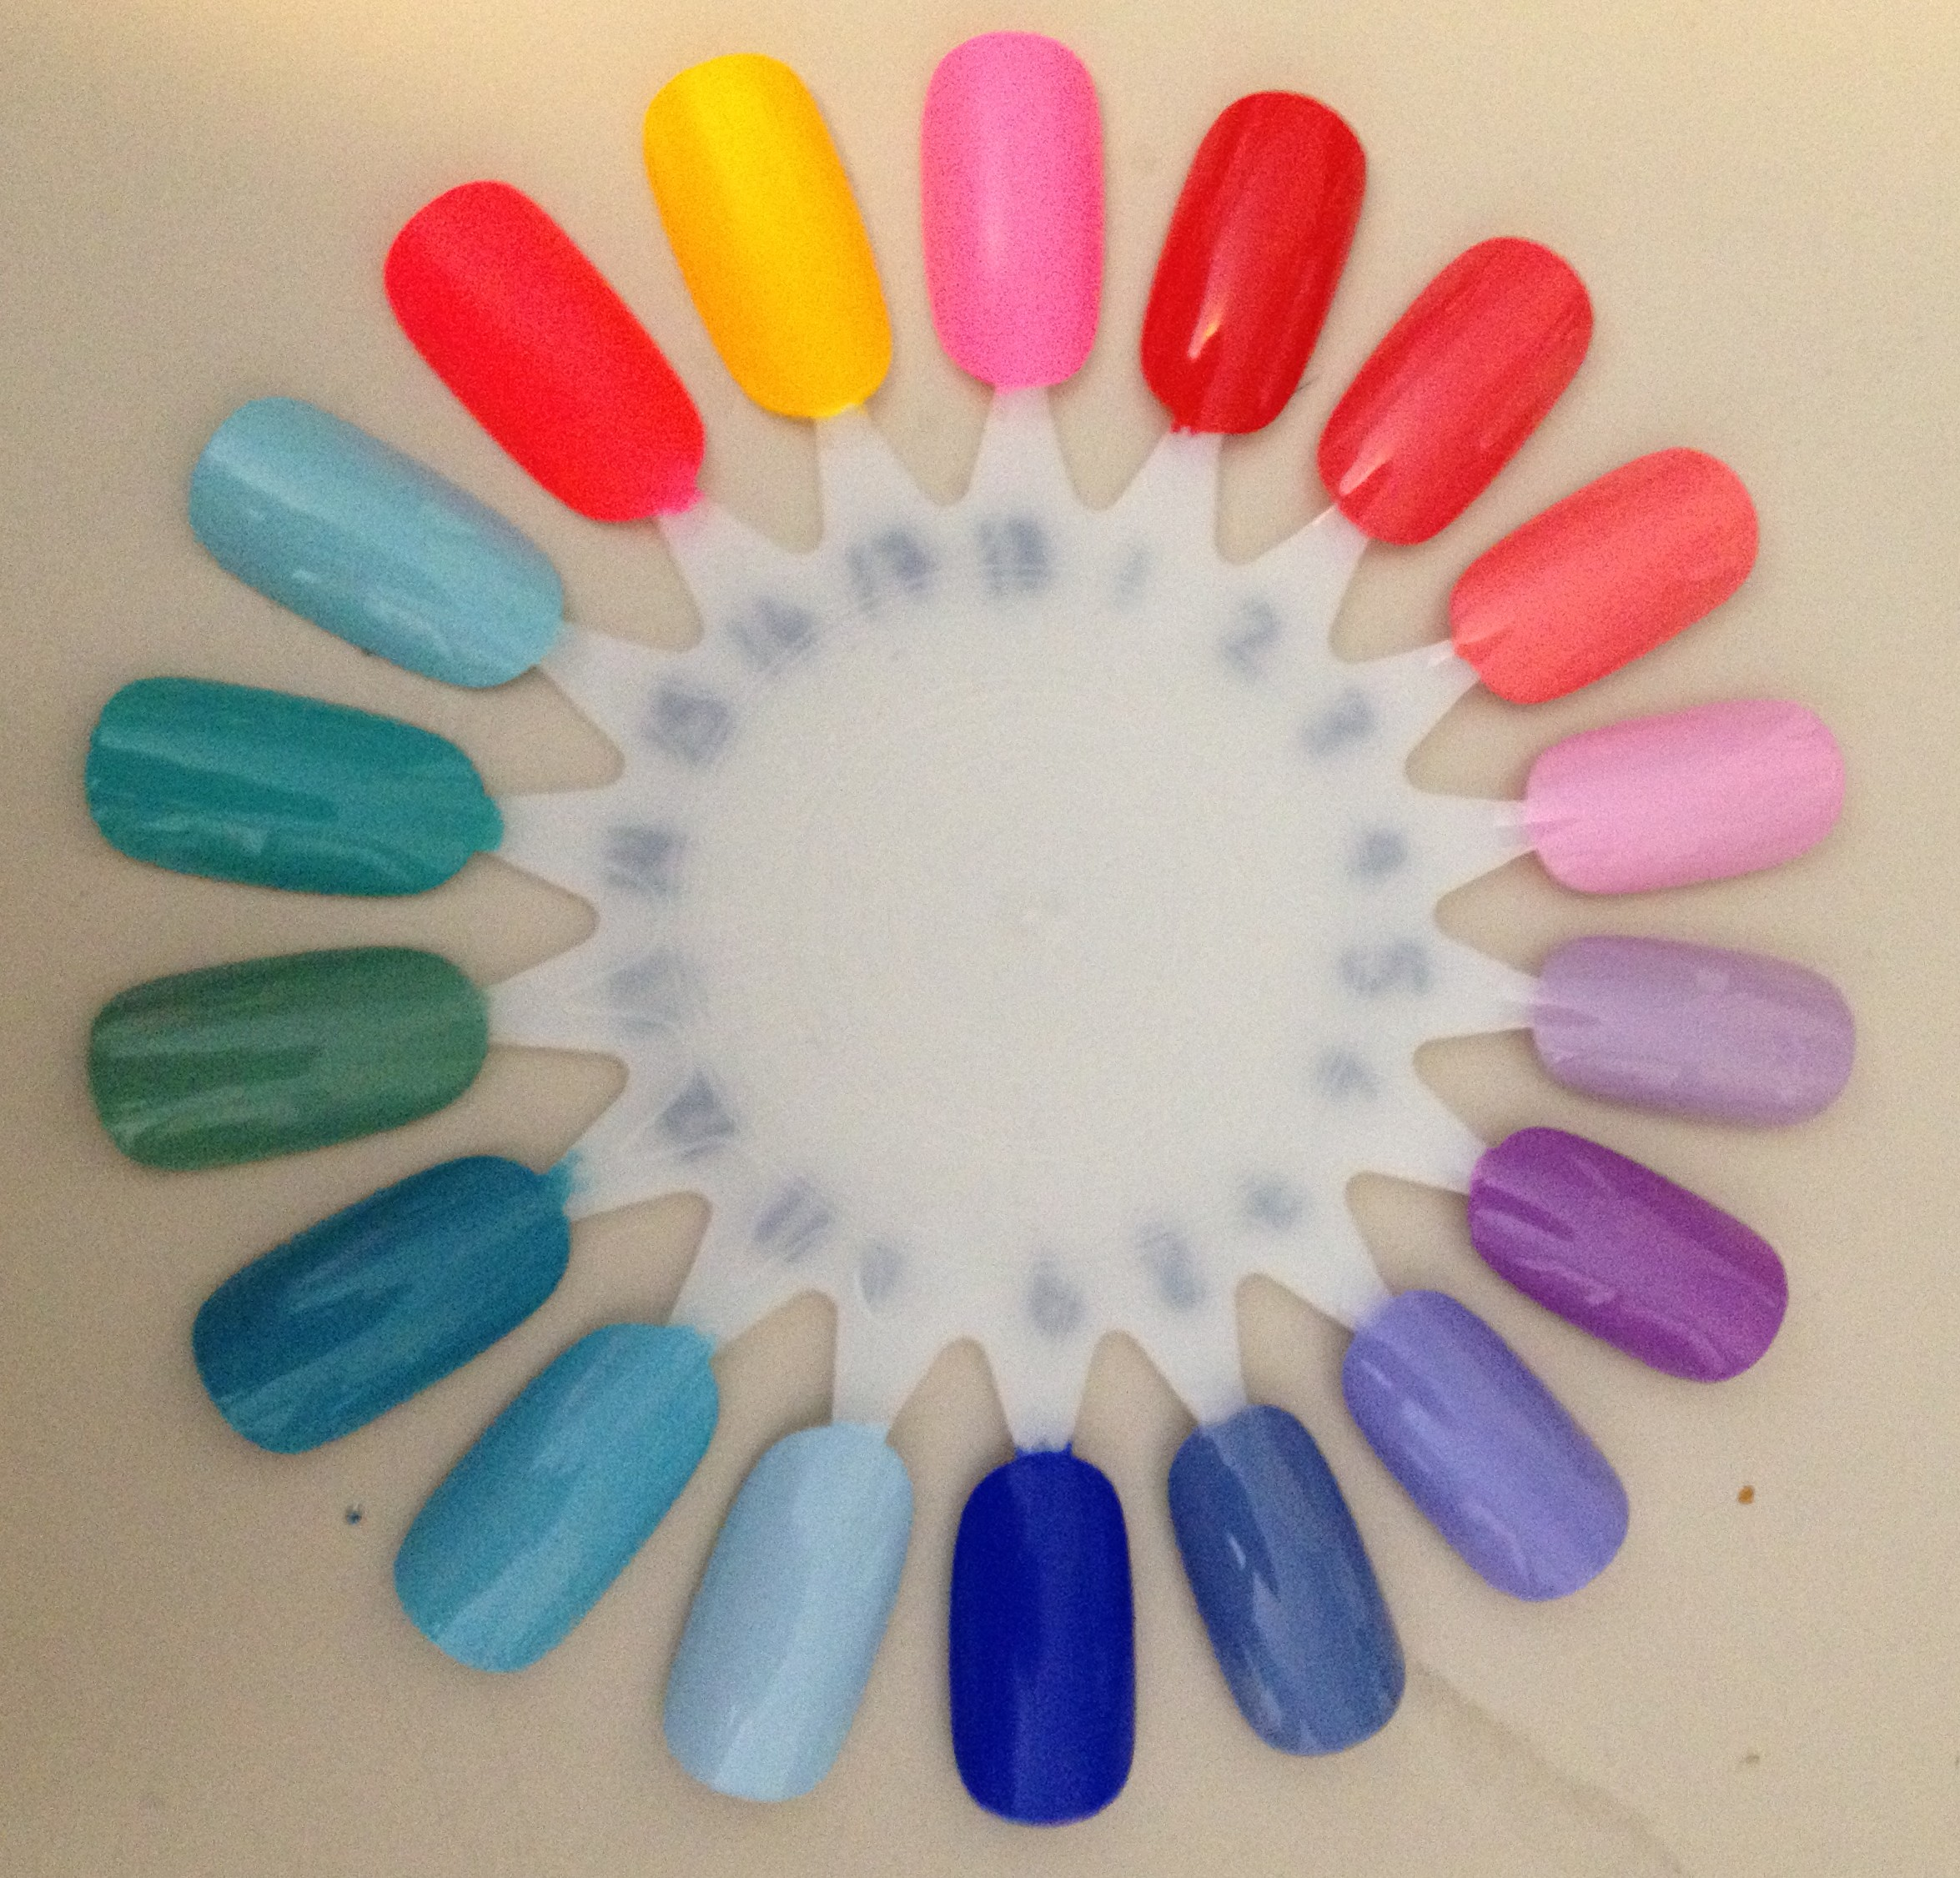 Summer 2013 Nail Polish Favourites – Preview! | My Red Nail Polish